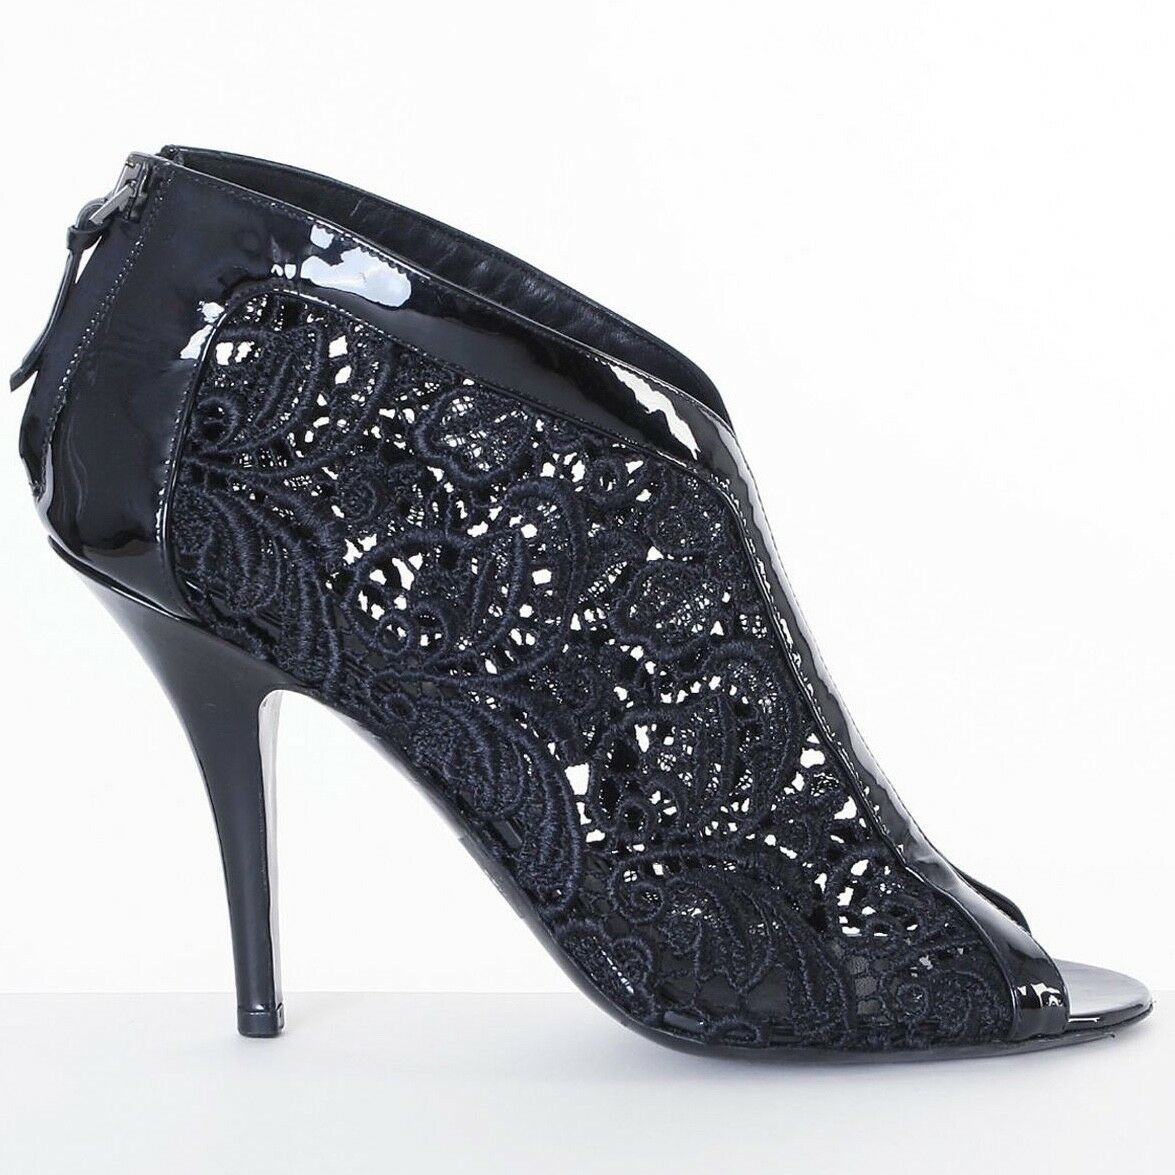 GIVENCHY black floral lace lace lace patent leather peep toe booties heels EU37.5 US7.5 fa8463